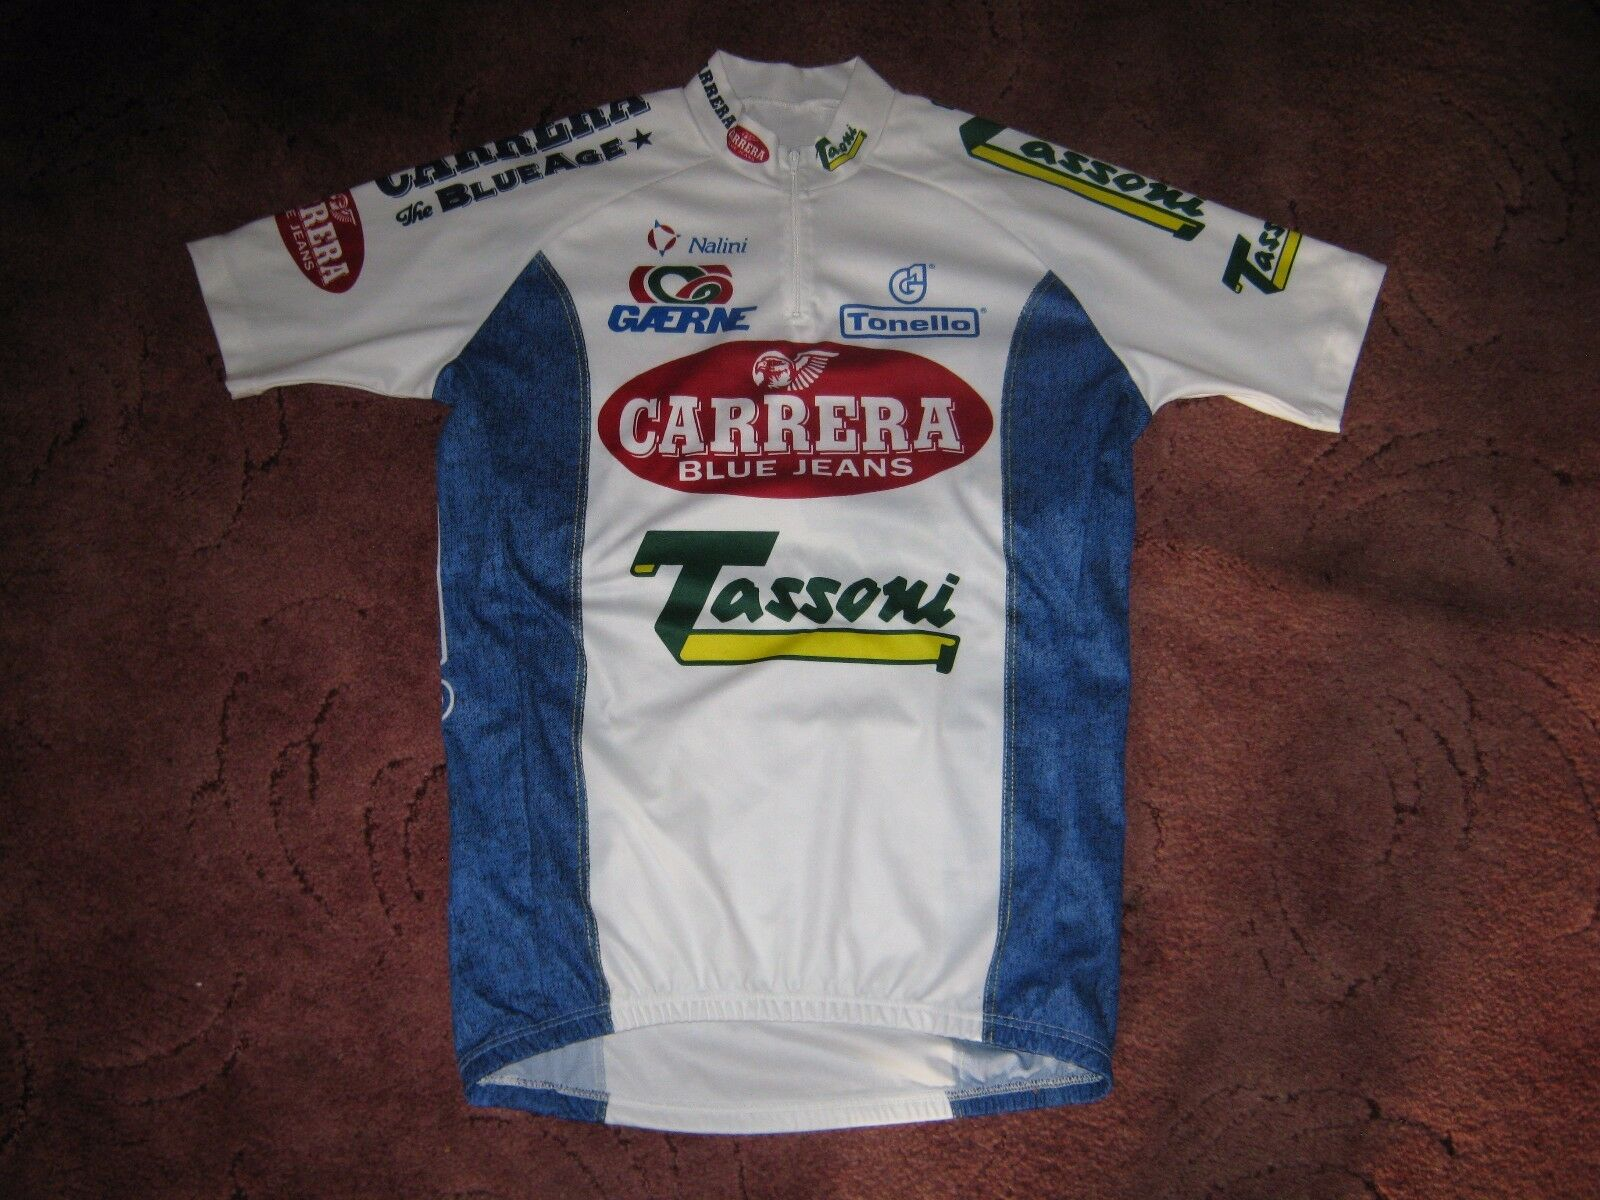 CARRERA TASSONI 1995 NALINI ITALIAN VINTAGE CYCLING JERSEY [Sz   4]  on sale